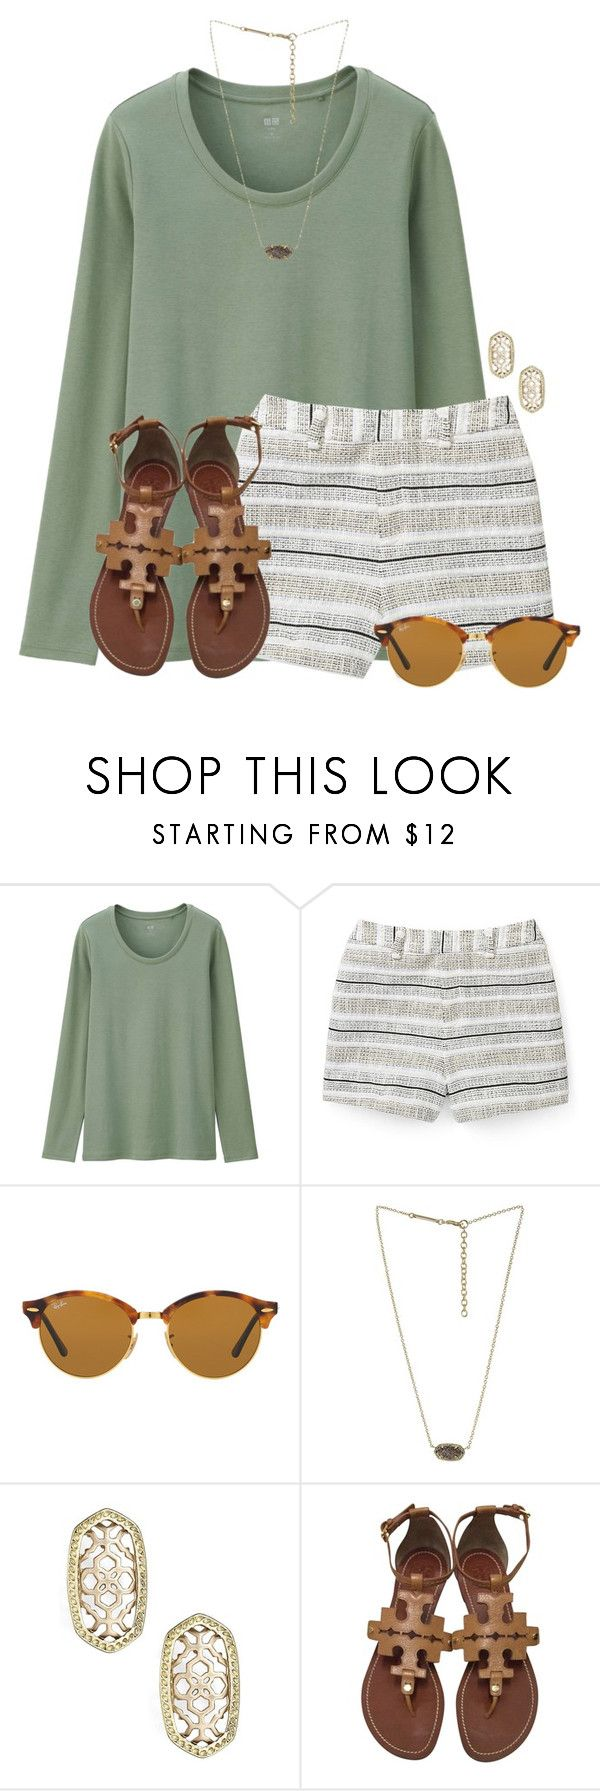 """Easter weekend:)"" by flroasburn ❤ liked on Polyvore featuring Uniqlo, Rebecca Minkoff, Ray-Ban, Kendra Scott and Tory Burch"